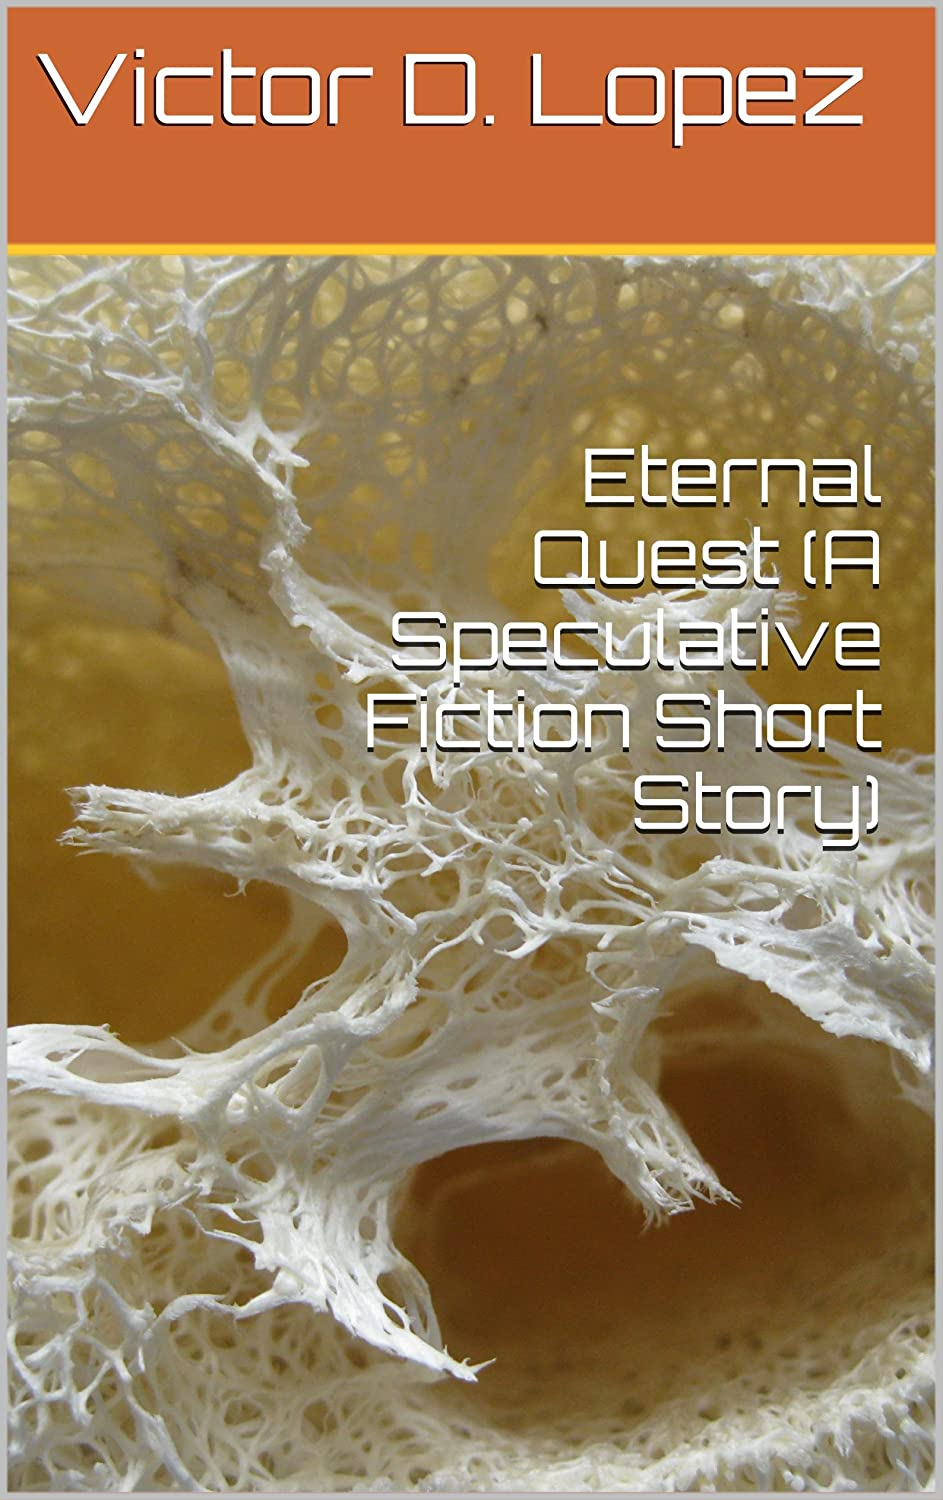 http://www.amazon.com/Eternal-Quest-Speculative-Fiction-Short-ebook/dp/B006R18NAU/ref=sr_1_13?ie=UTF8&qid=1385488353&sr=8-13&keywords=victor+d.+lopez